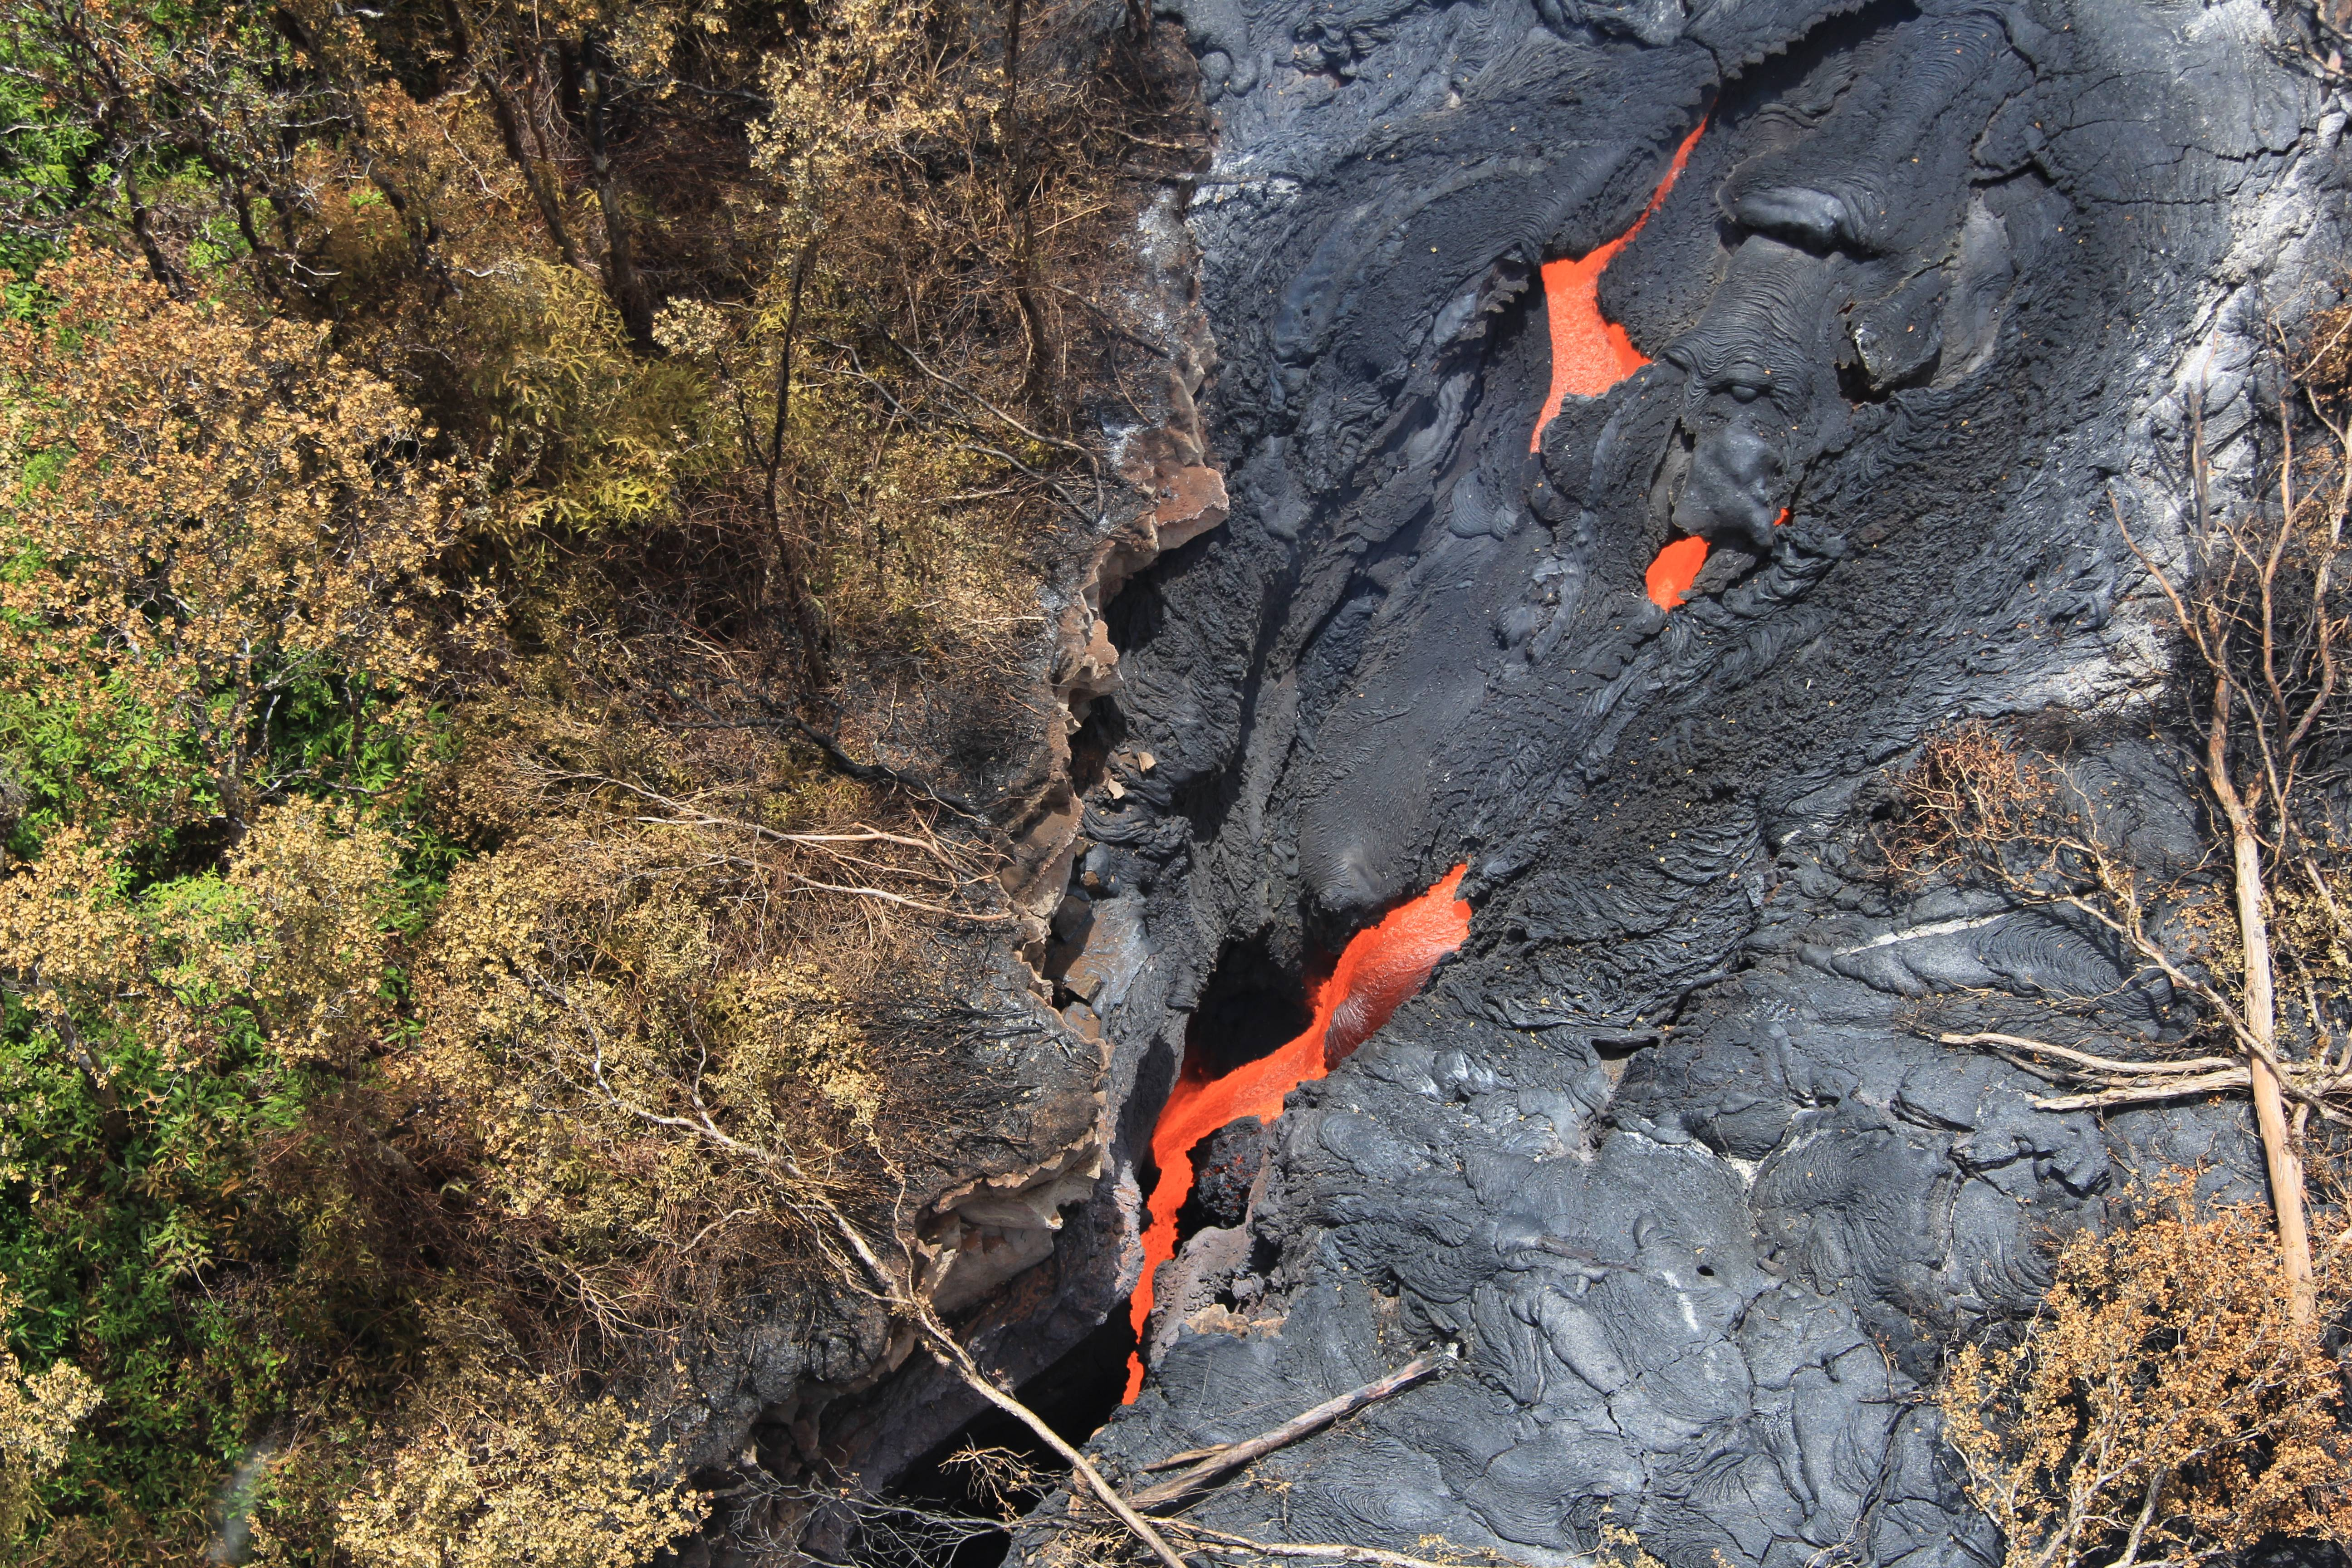 Fluid lava streams from the June 27 lava flow from the Kilauea volcano in Pahoa, Hawaii. The June 27 lava flow is named for the date it began erupting from a new vent. The Hawaiian Volcano Observatory issued a warning Thursday, Sept. 4, 2014 to a rural community in the path of a lava flow on Hawaii's Big Island, as the molten rock moved to within a mile of homes. Observatory scientists said lava from the Kilauea volcano could reach the Kaohe Homesteads in five to seven days if it continues advancing through cracks in the earth.